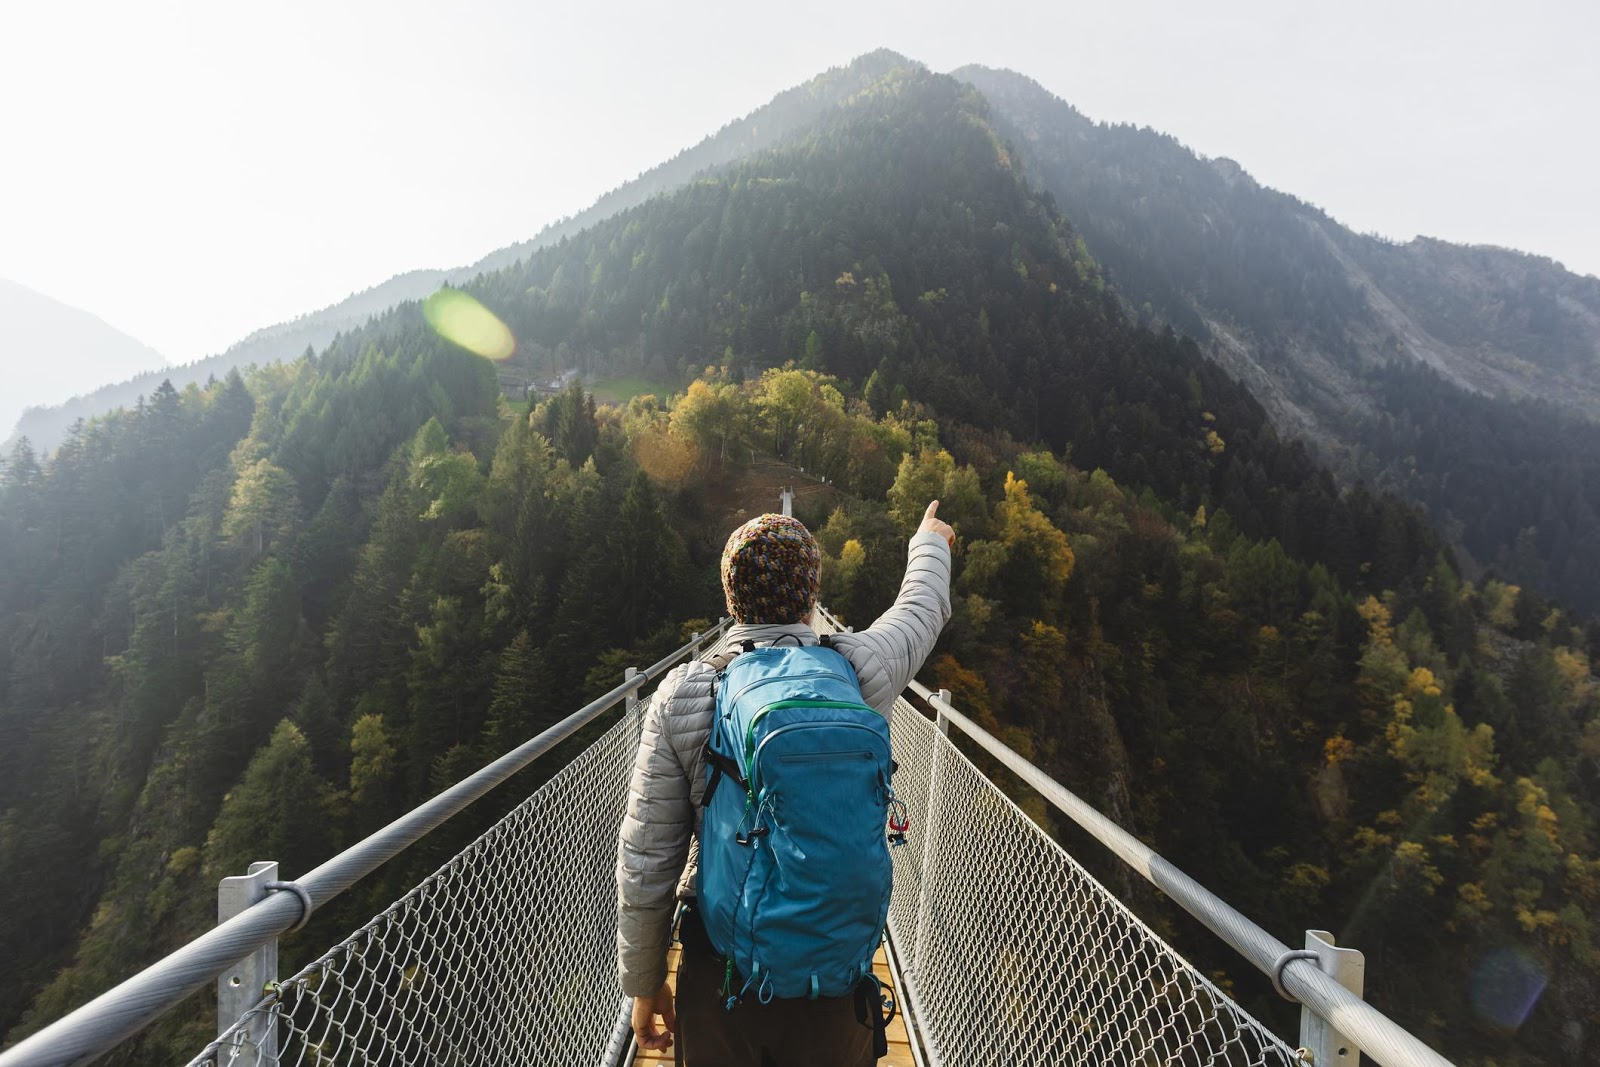 Hiker walking across a bridge with a blue backpack on.